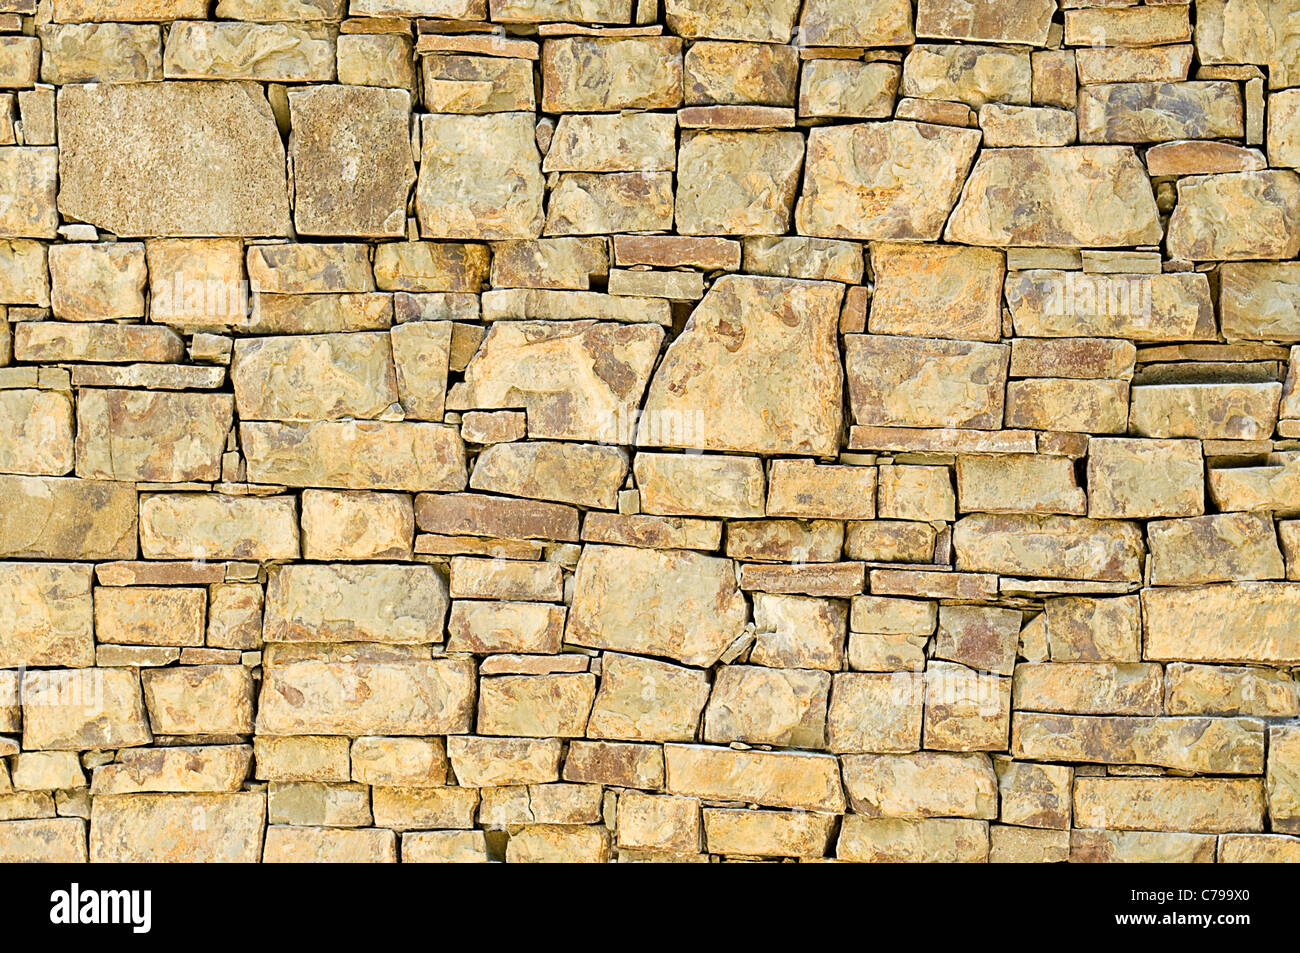 Unique Seamless Decorative Stone Wall Textures Gift - The Wall Art ...